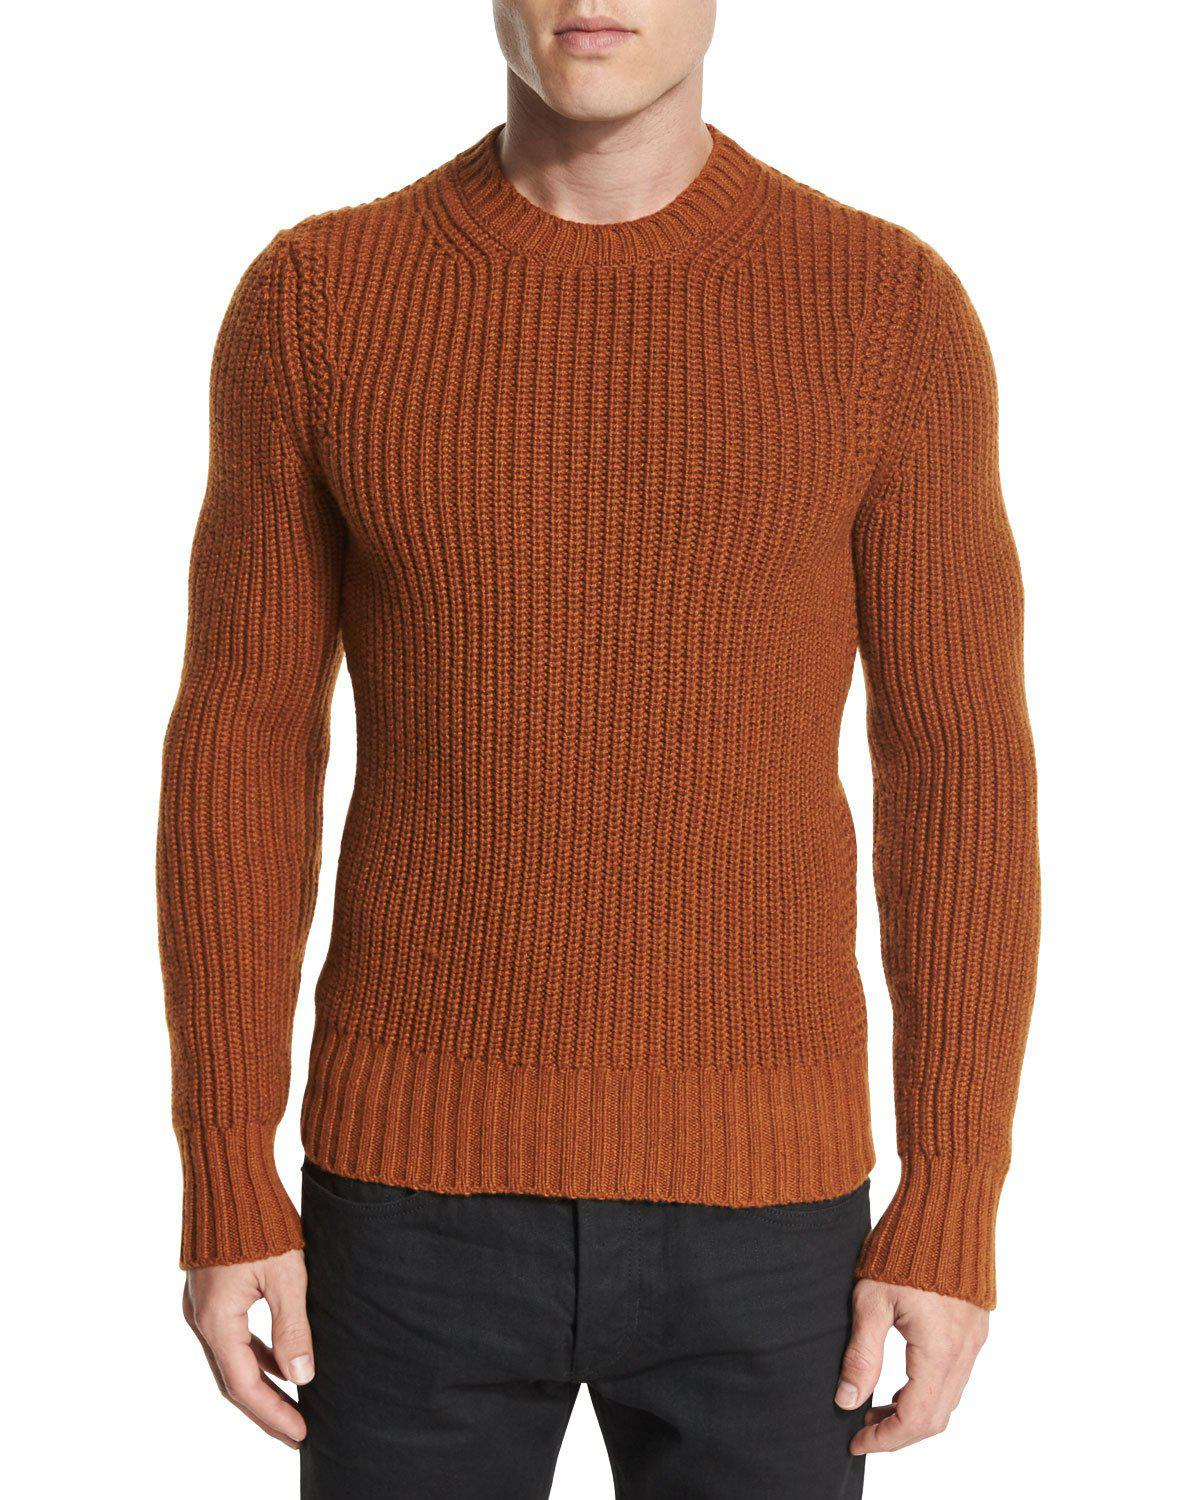 Tom ford Fisherman Ribbed Crewneck Sweater in Brown for Men | Lyst